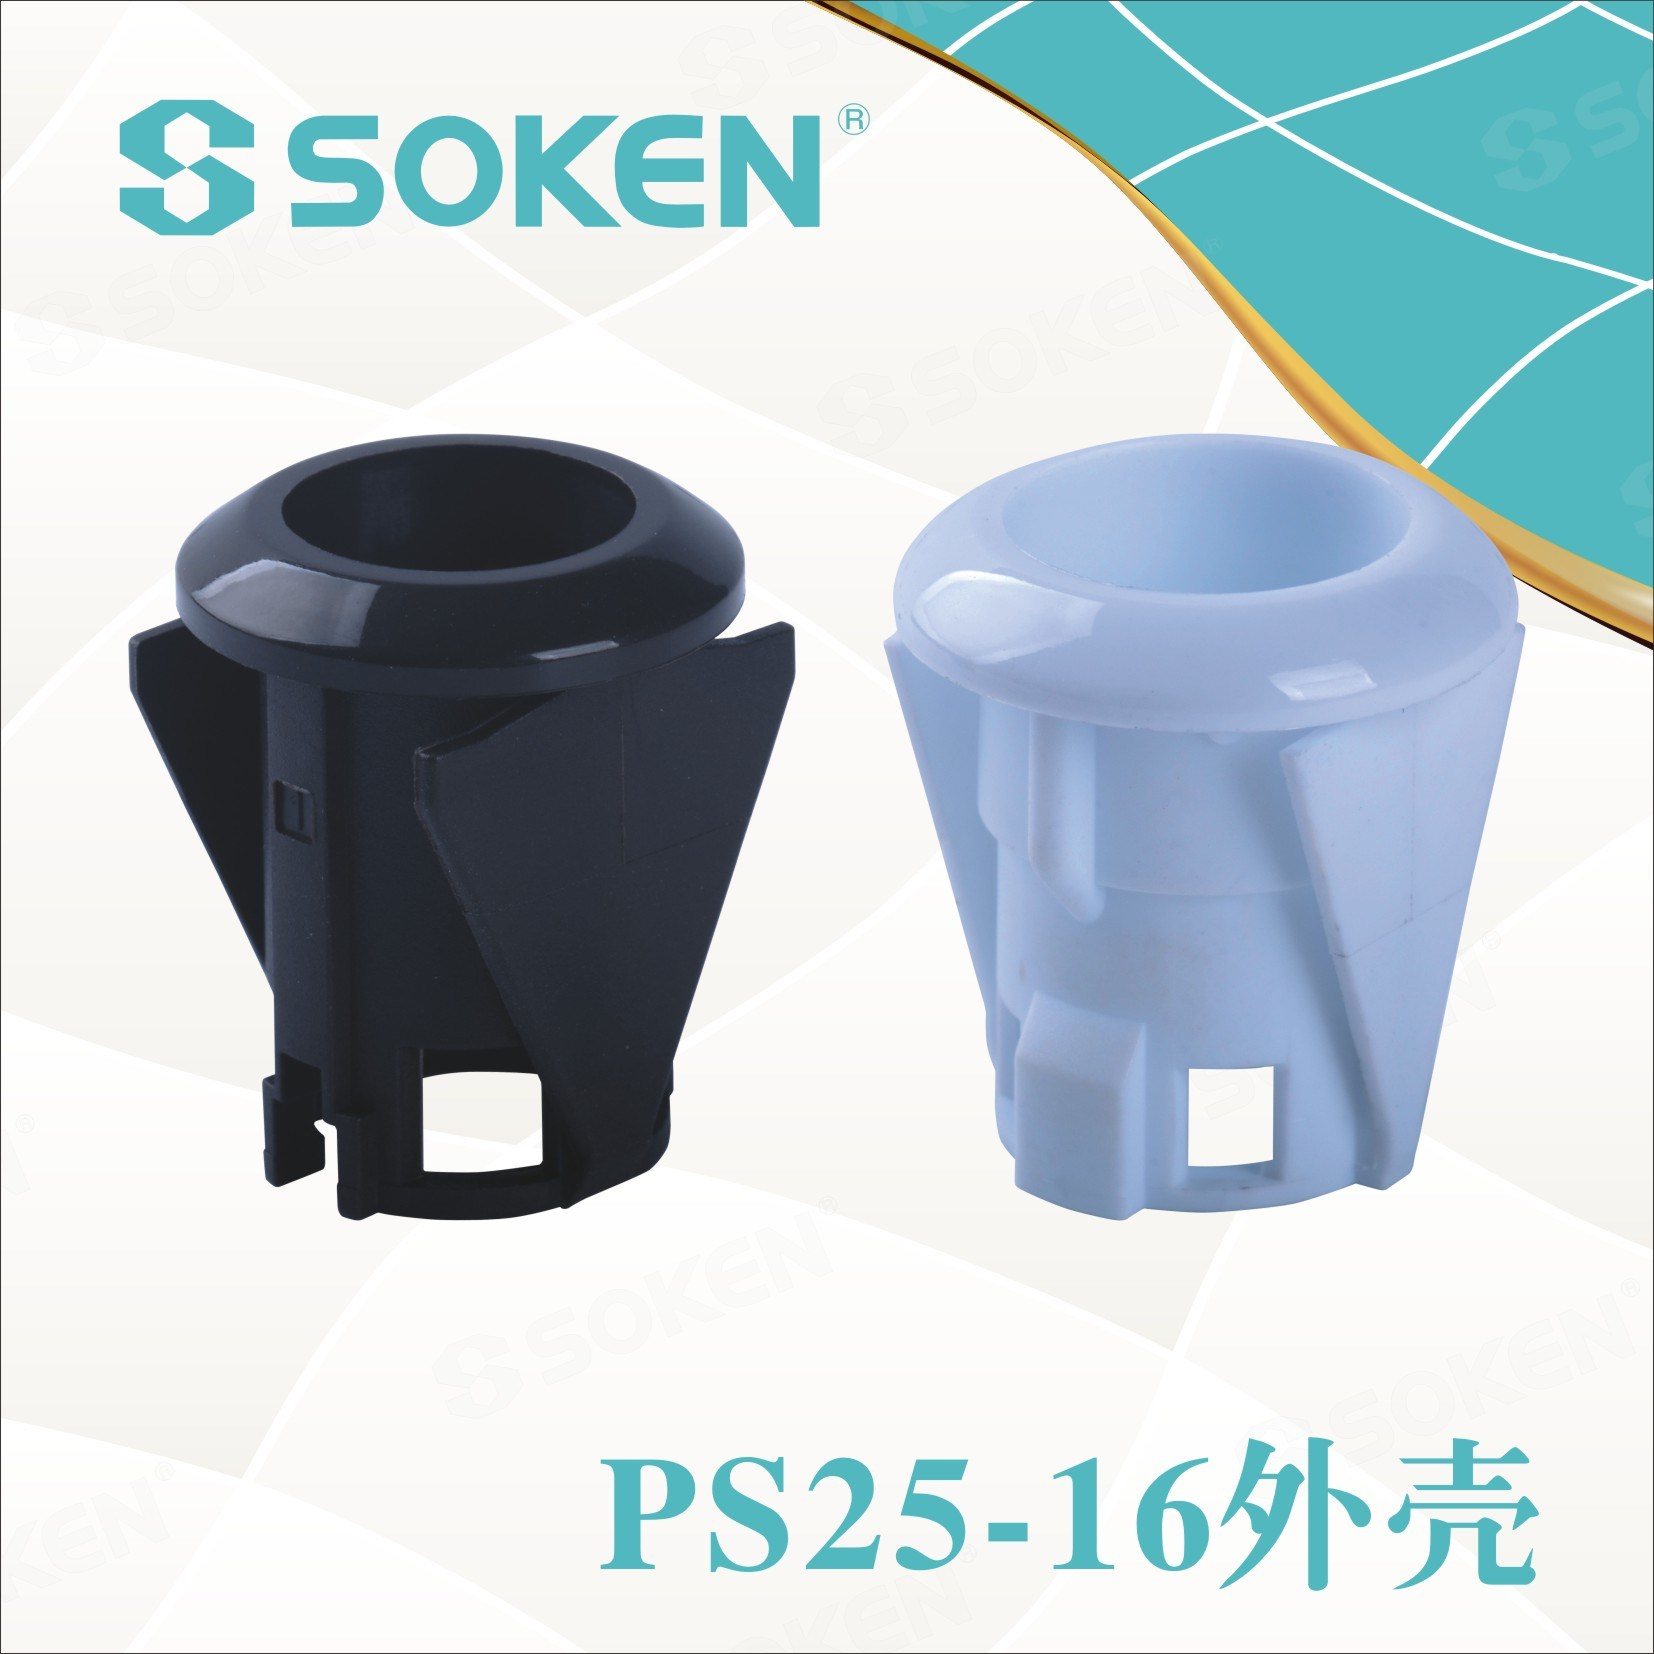 Soken Oven Push Button Beralih PS25-16-2